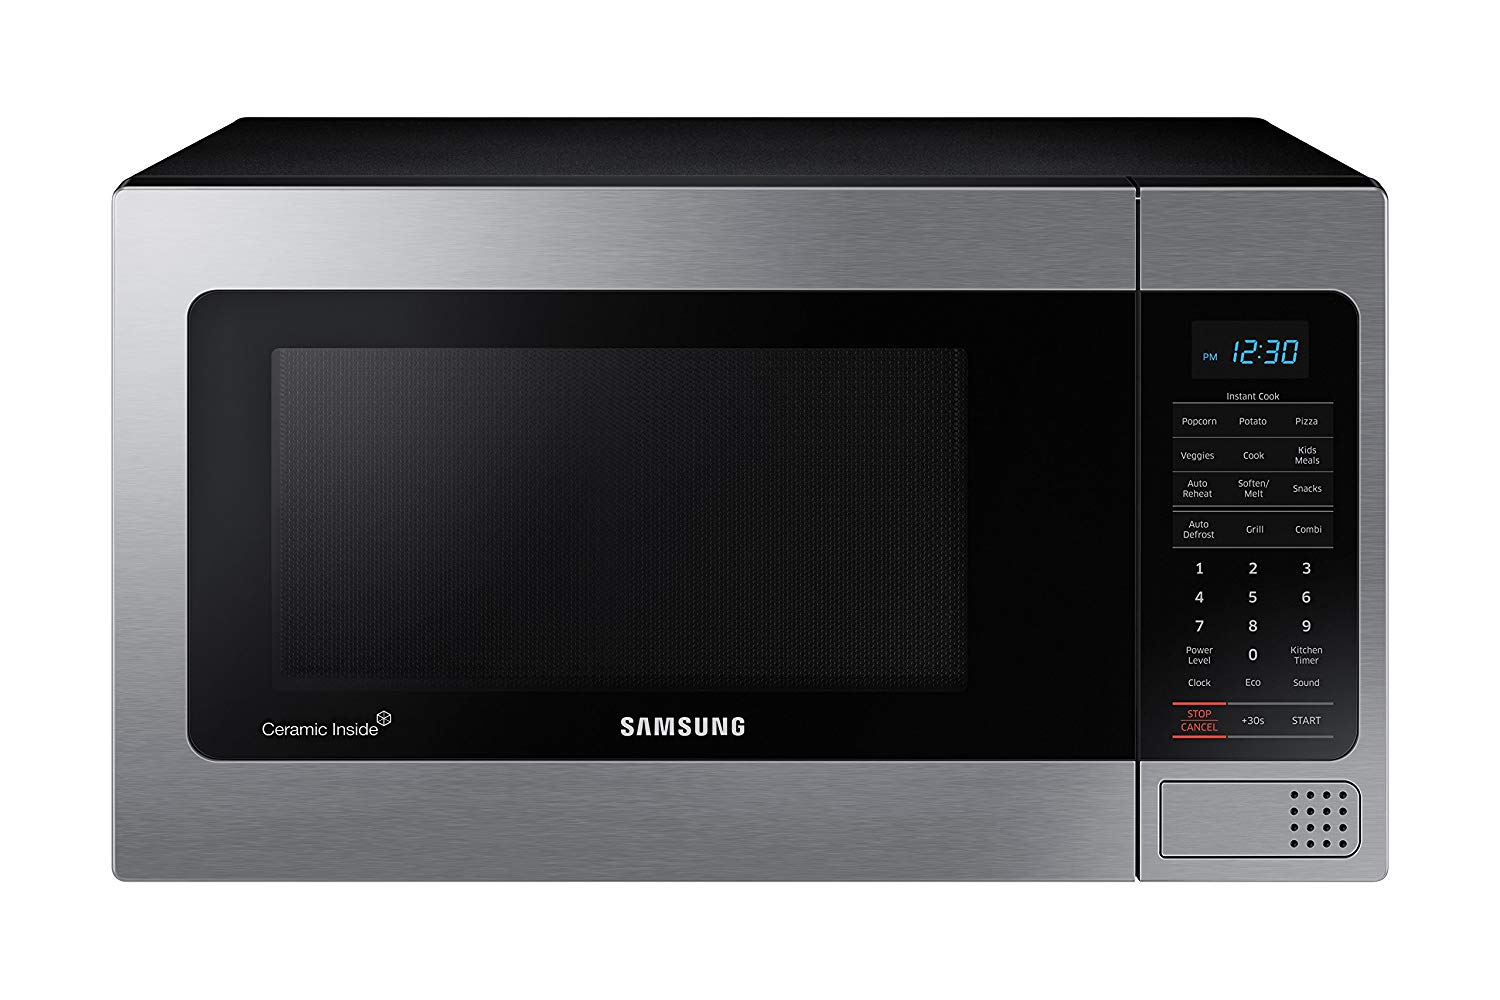 Best Microwave Convection Oven: Samsung MG11H2020CT